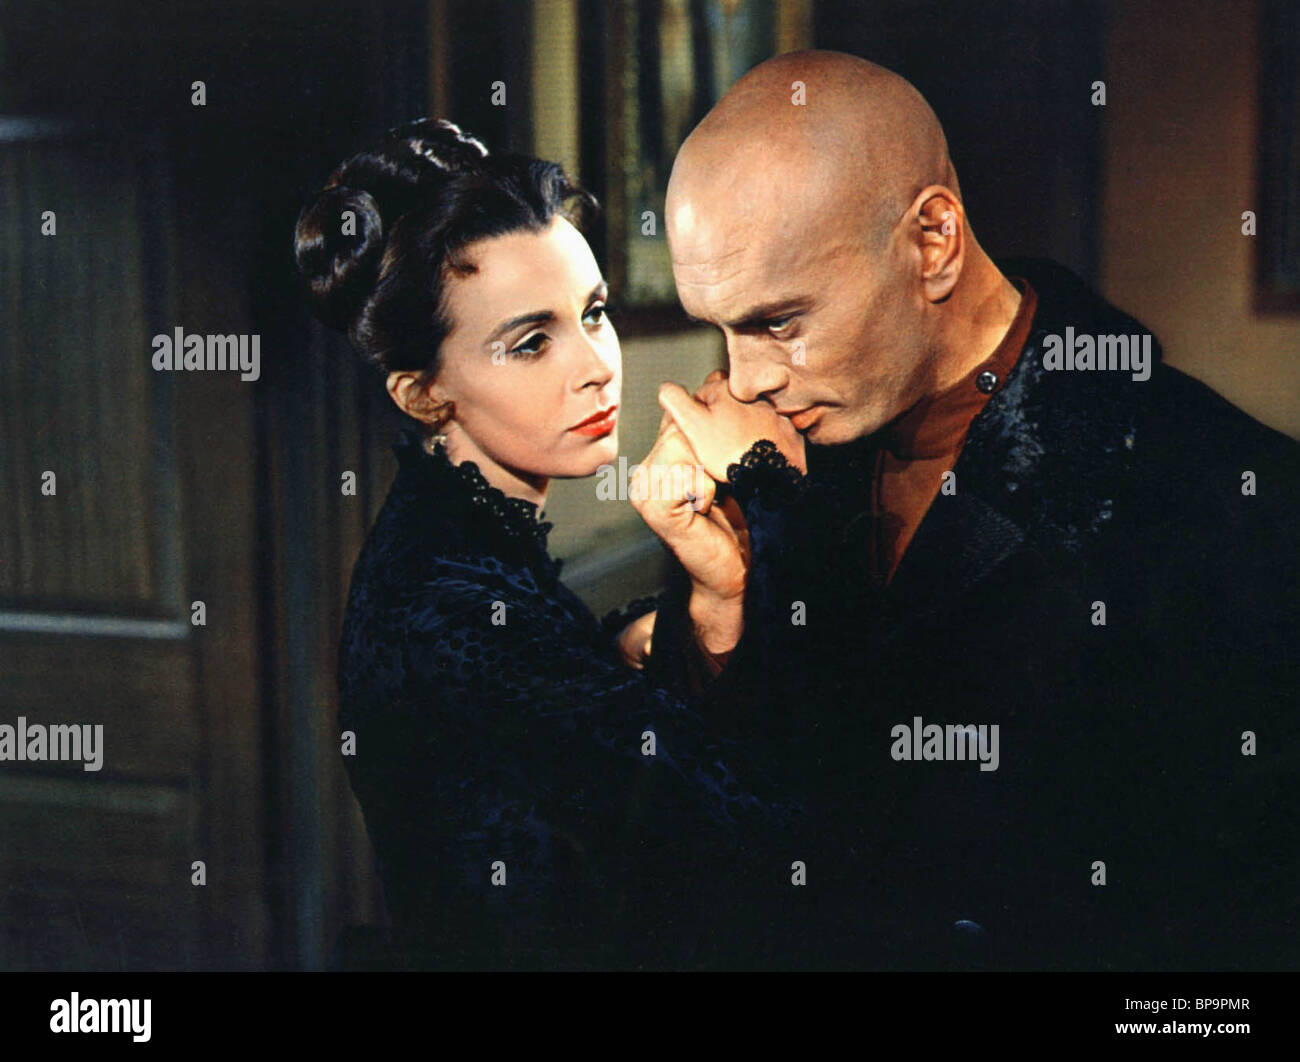 CLAIRE BLOOM, YUL BRYNNER, THE BROTHERS KARAMAZOV, 1958 - Stock Image